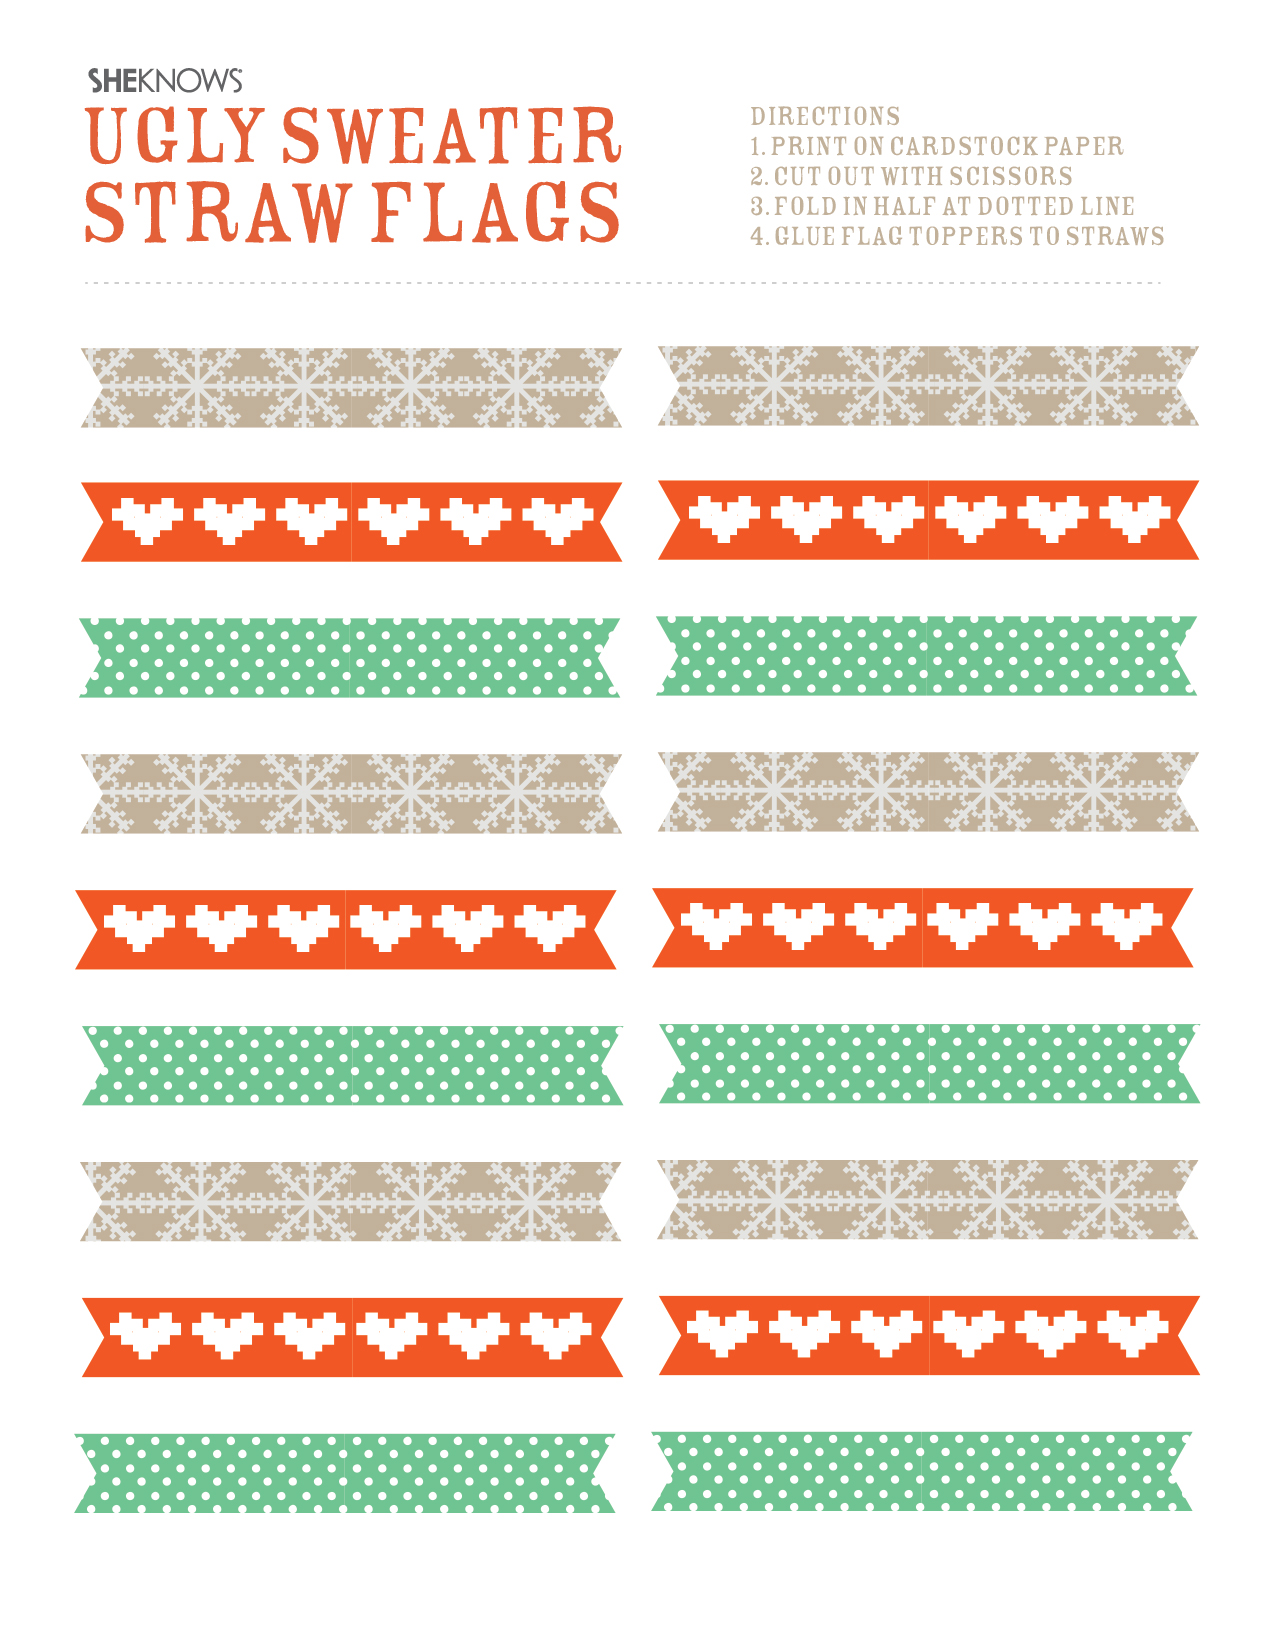 straw flags